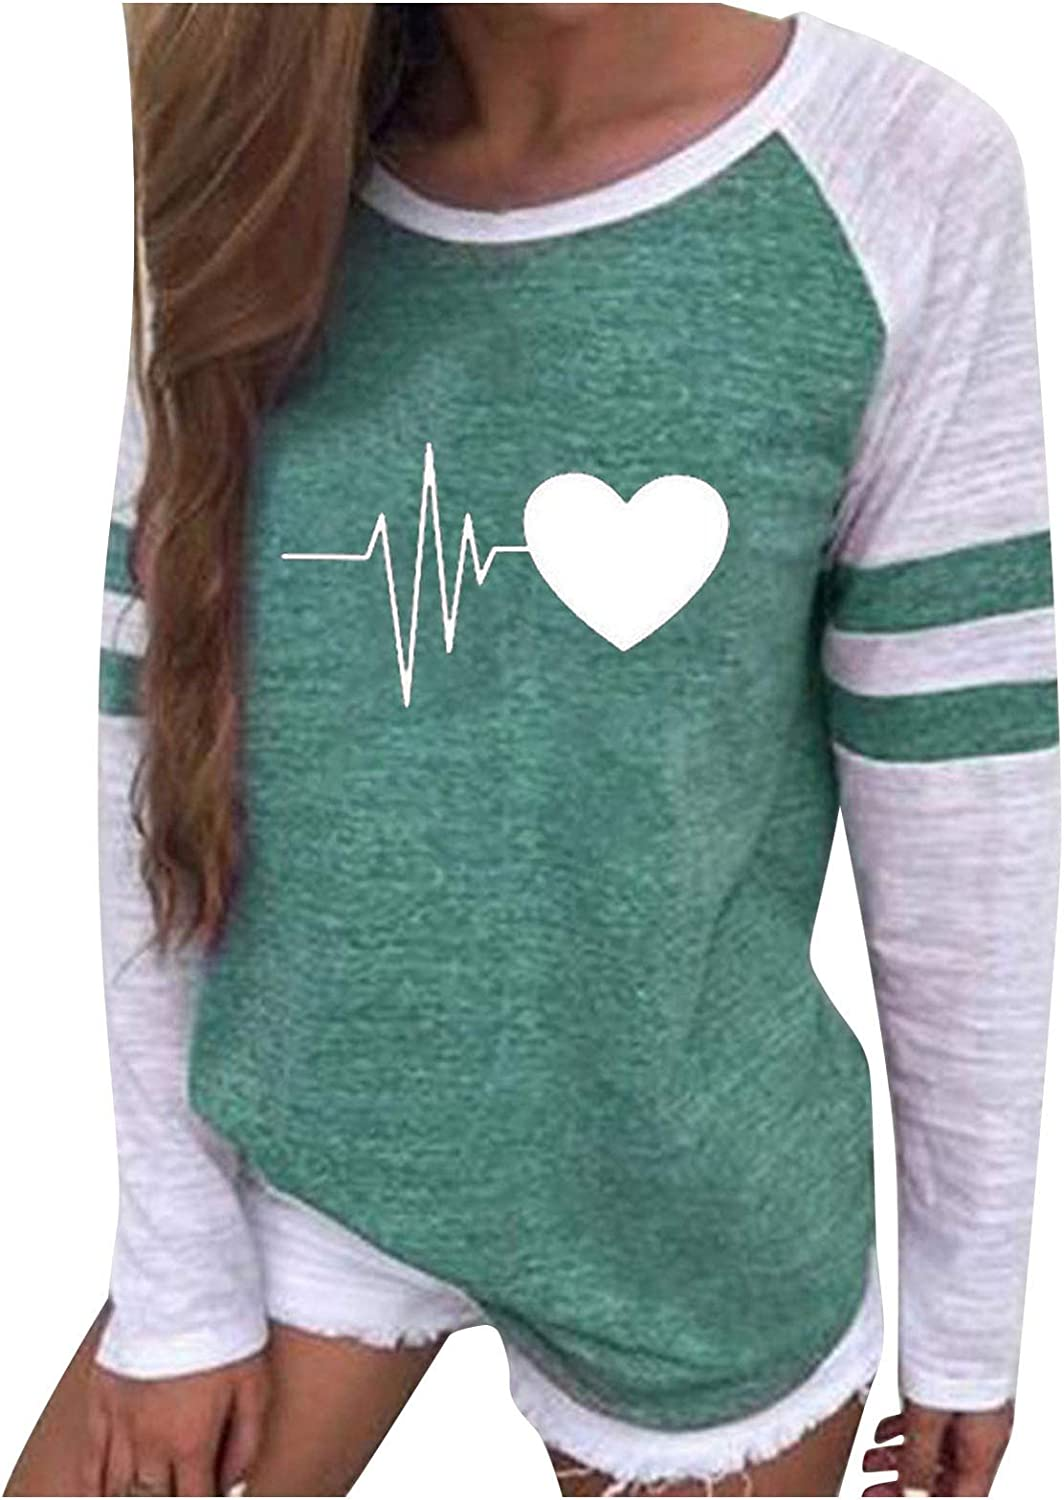 Shirts for 100% quality warranty Women Dressy Casual Long-awaited Long Tees Heart Sleeve Graphic St